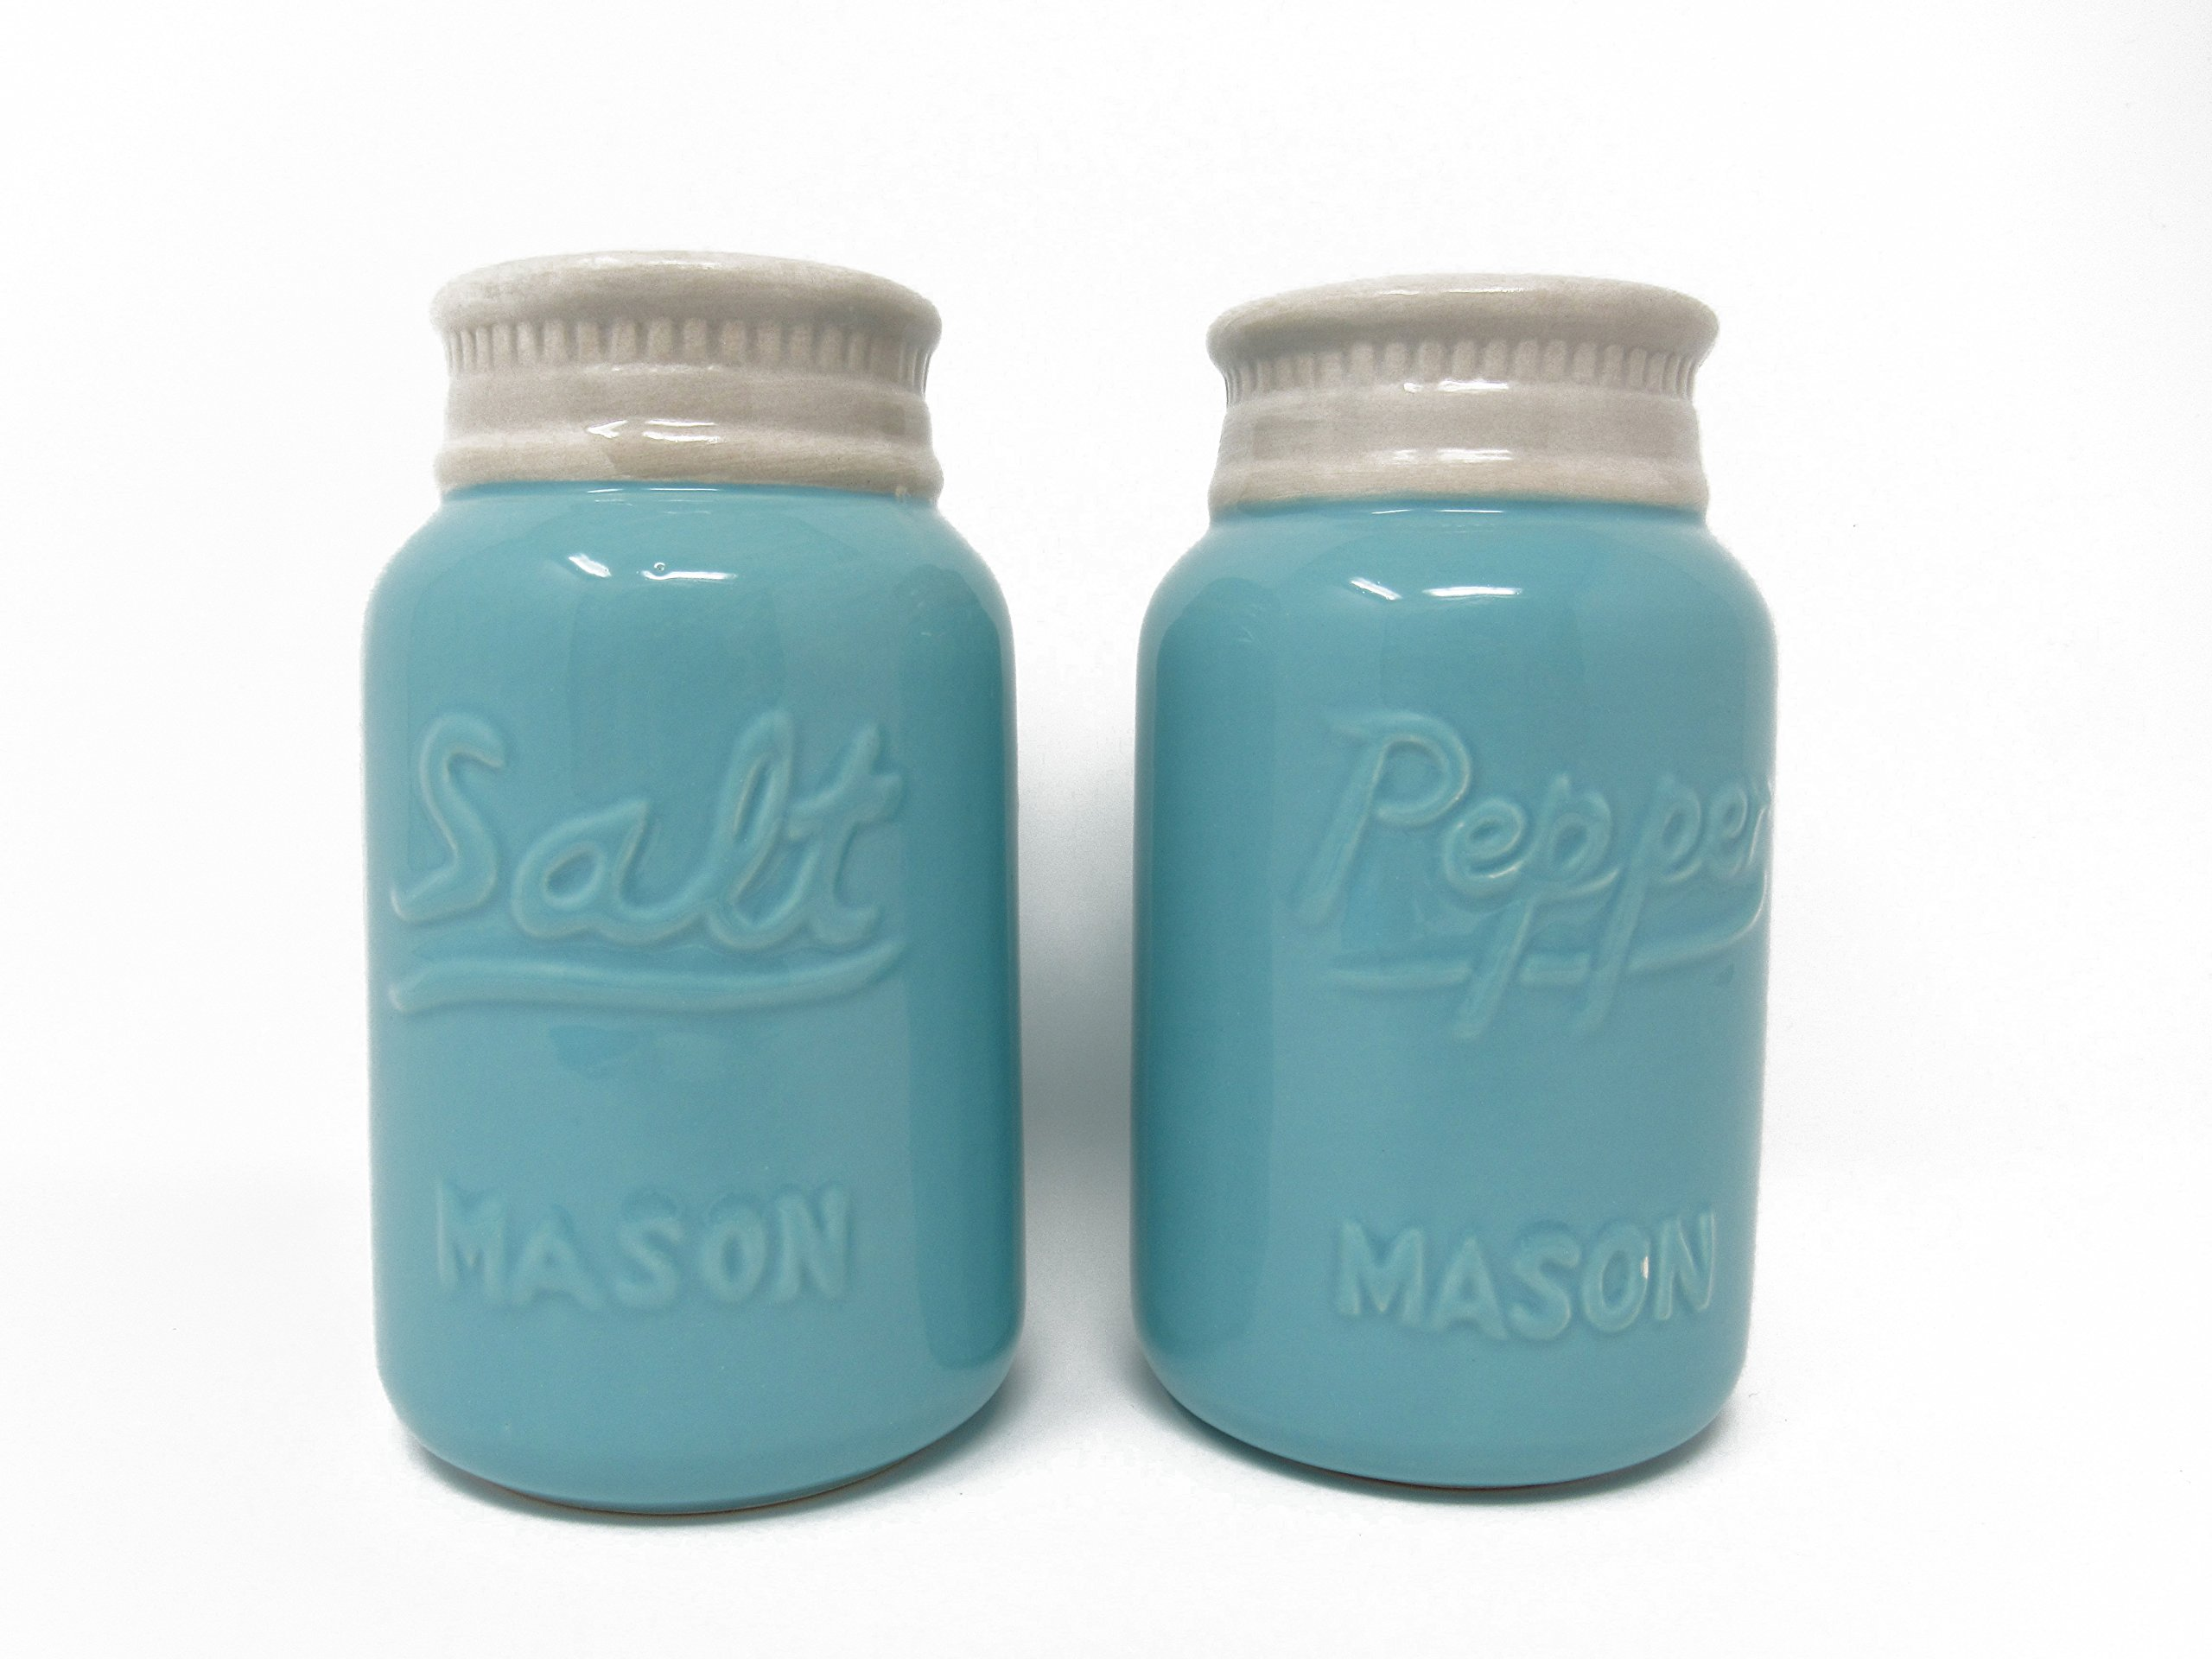 Modern Salt Pepper Shakers Mason Jar Salt And Pepper Shakers Vintage Large 8 Oz Set Of 2 Premium Quality Retro Modern Shabby Chic Unique Rustic Home Décor Cute